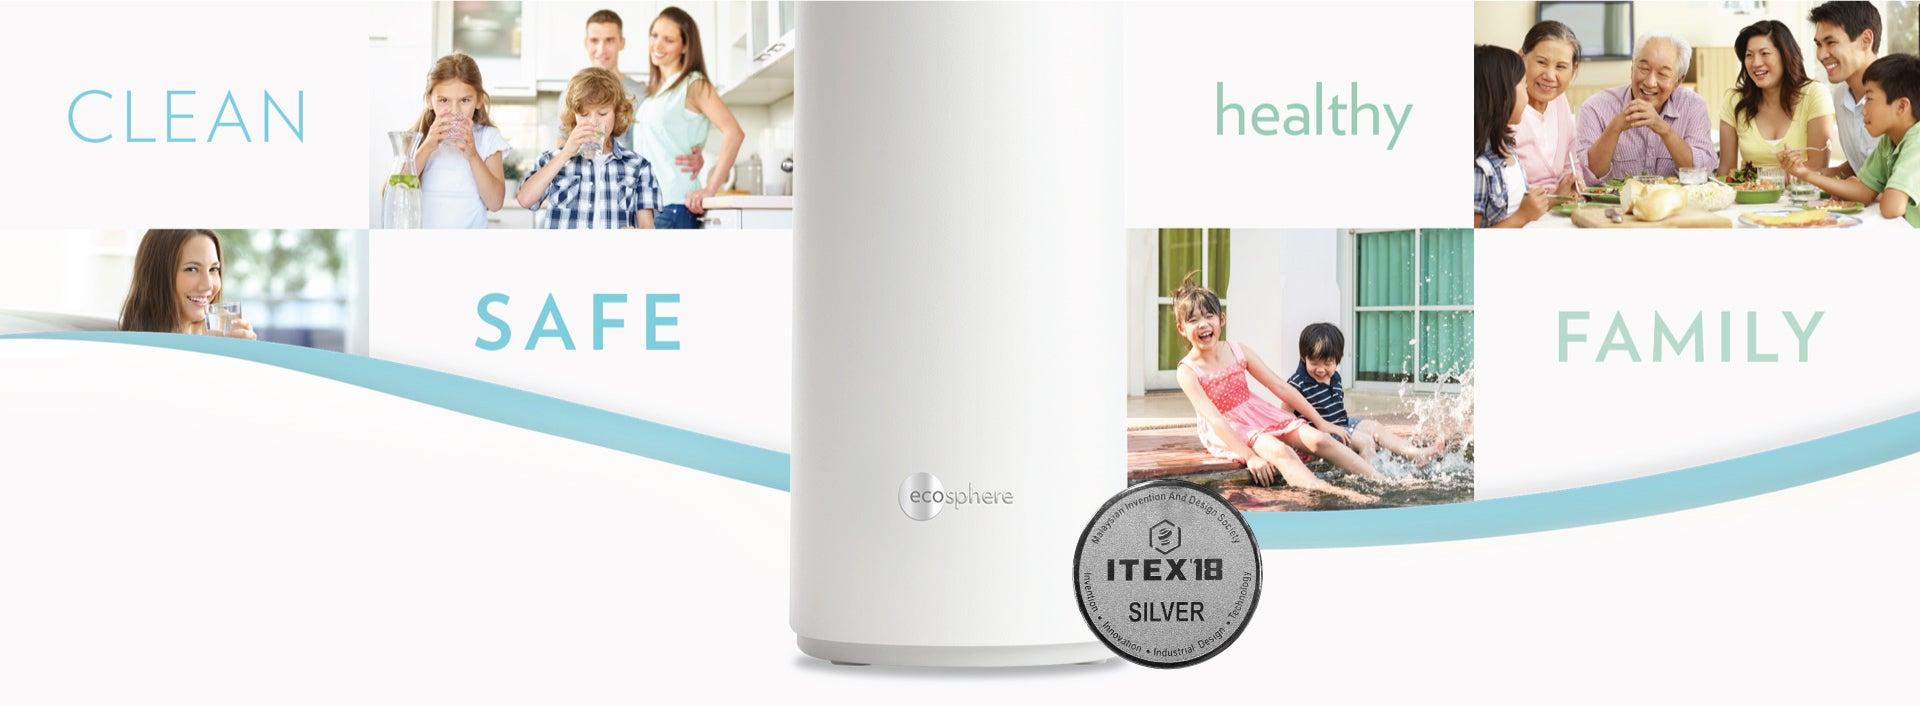 Montage photo of lifestyle home, family images with EcoSphere Water Purifier and brand keywords of Clean, Safe, Healthy, Family